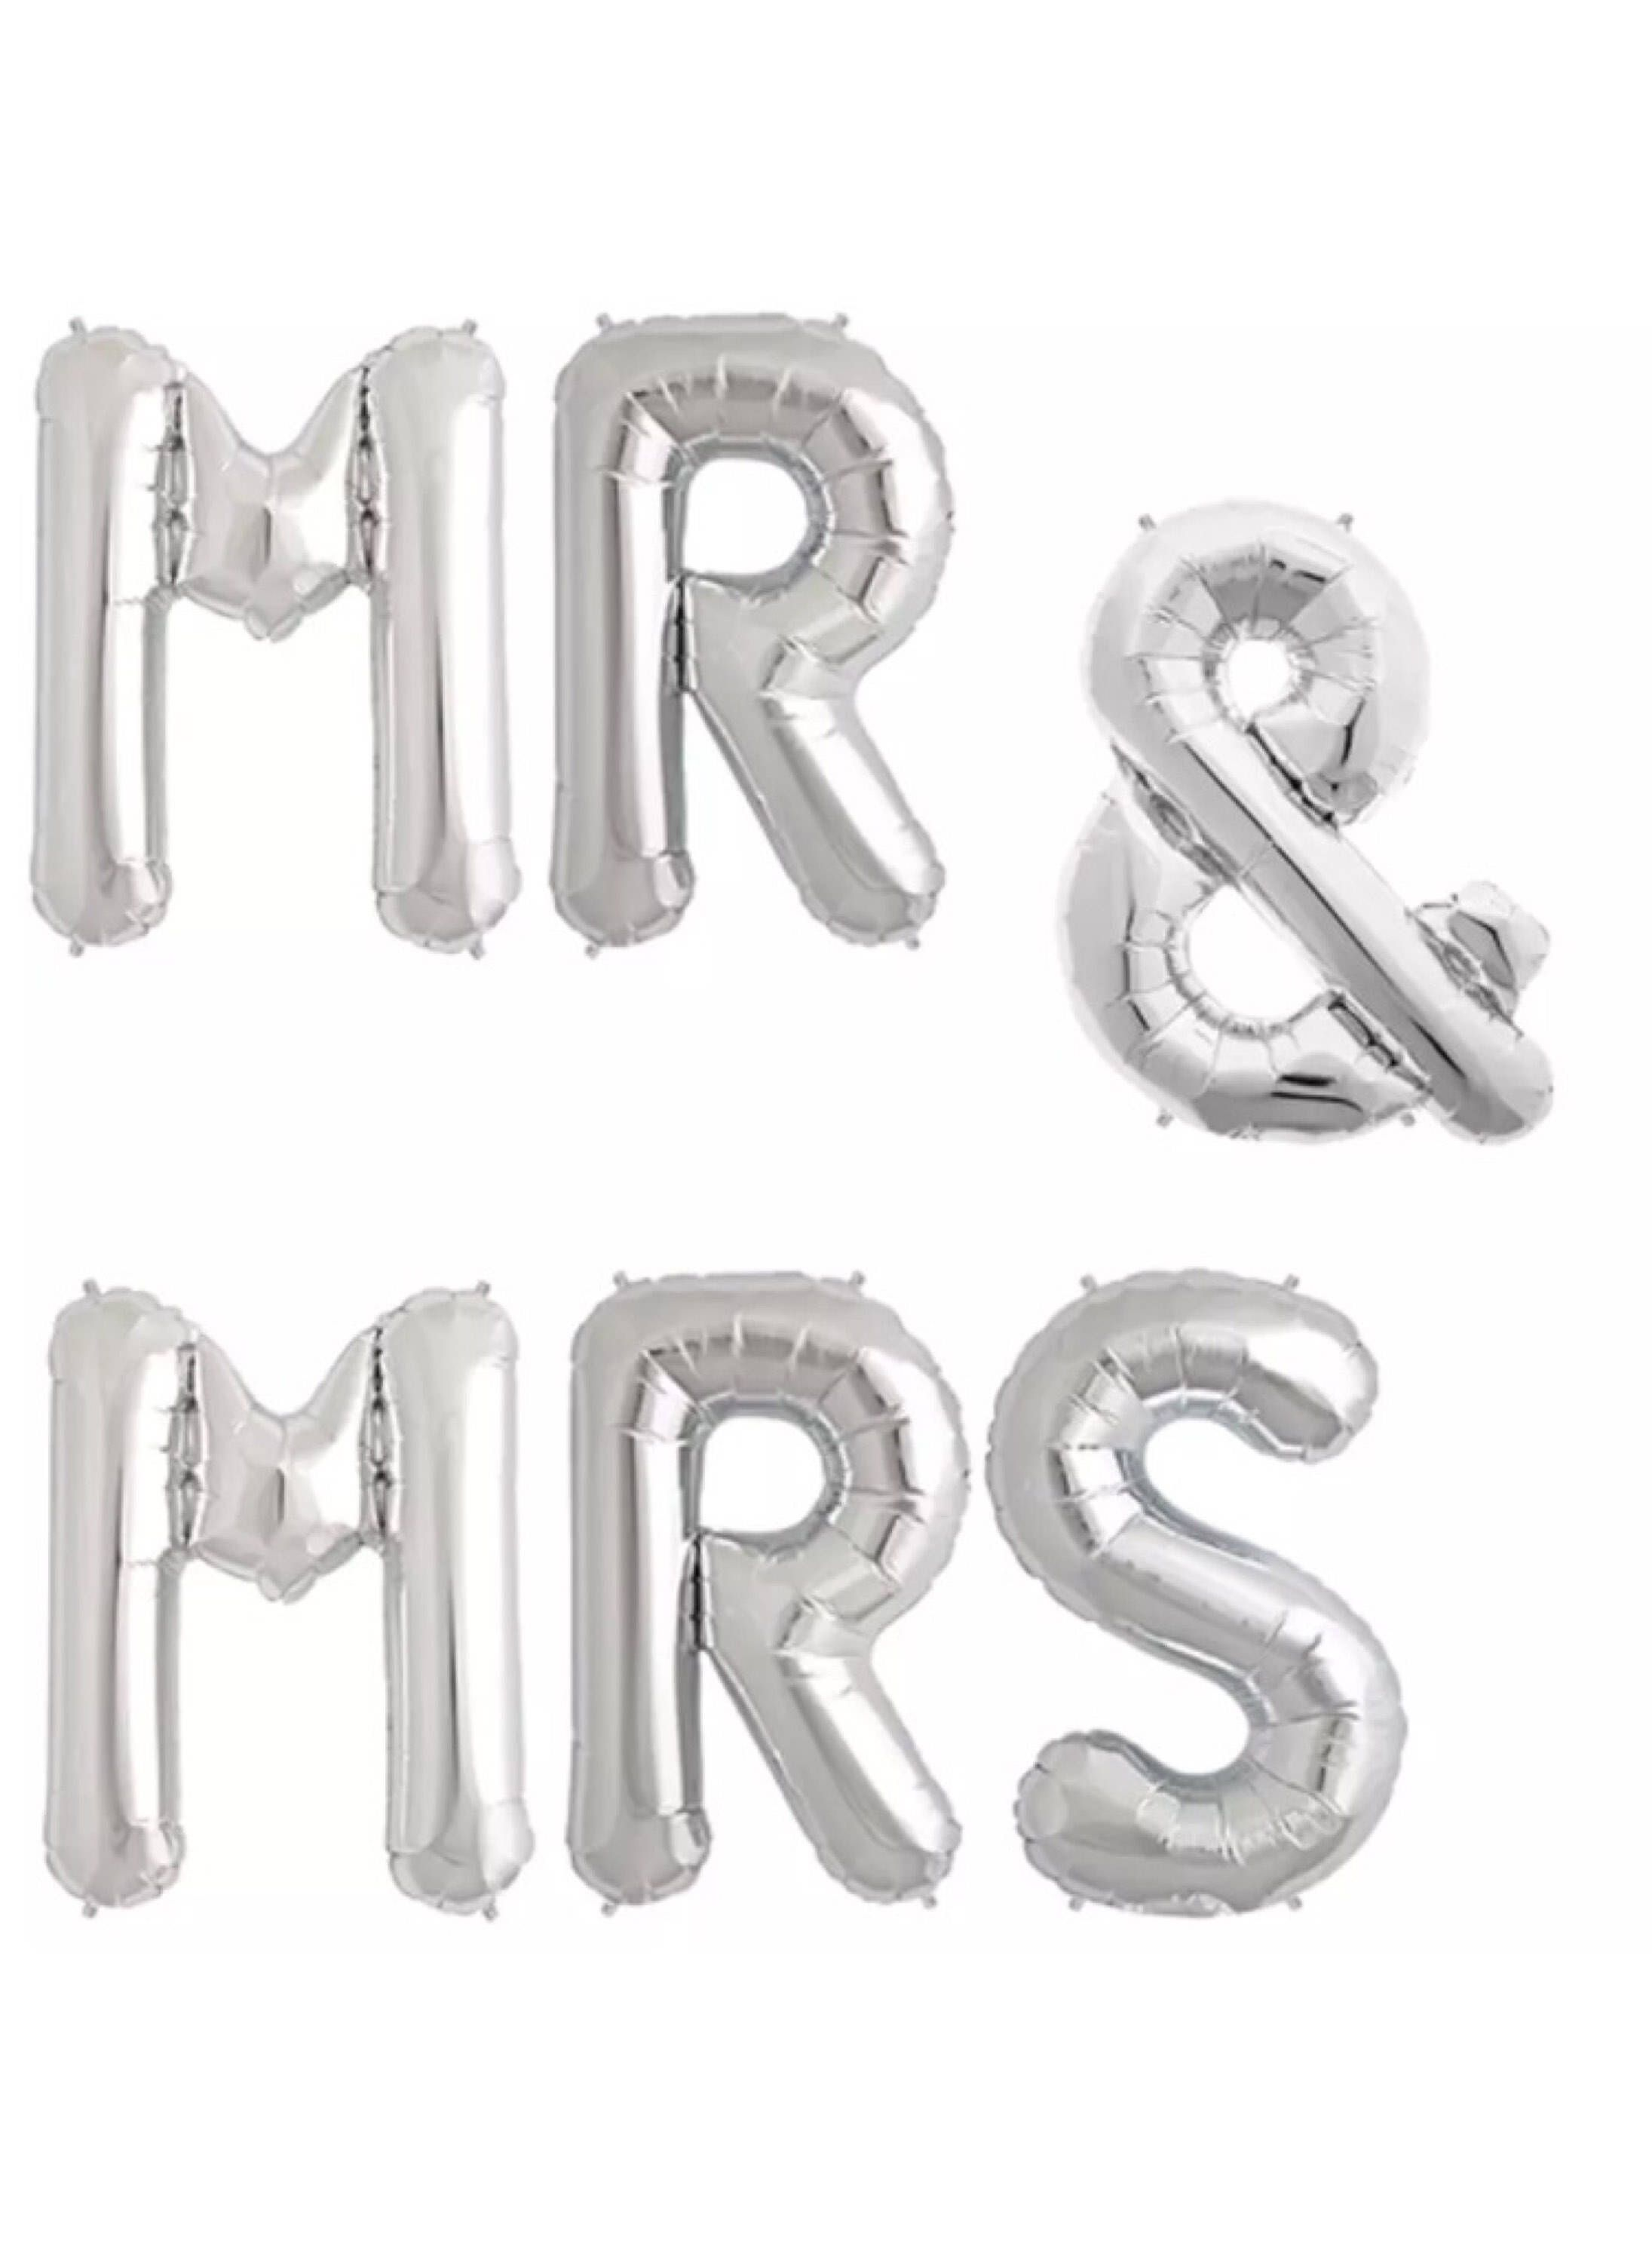 silver 16 foil balloons mr mrs silver letters balloons mylar balloons bridal shower hen party foil balloons letter balloons and balloon pump